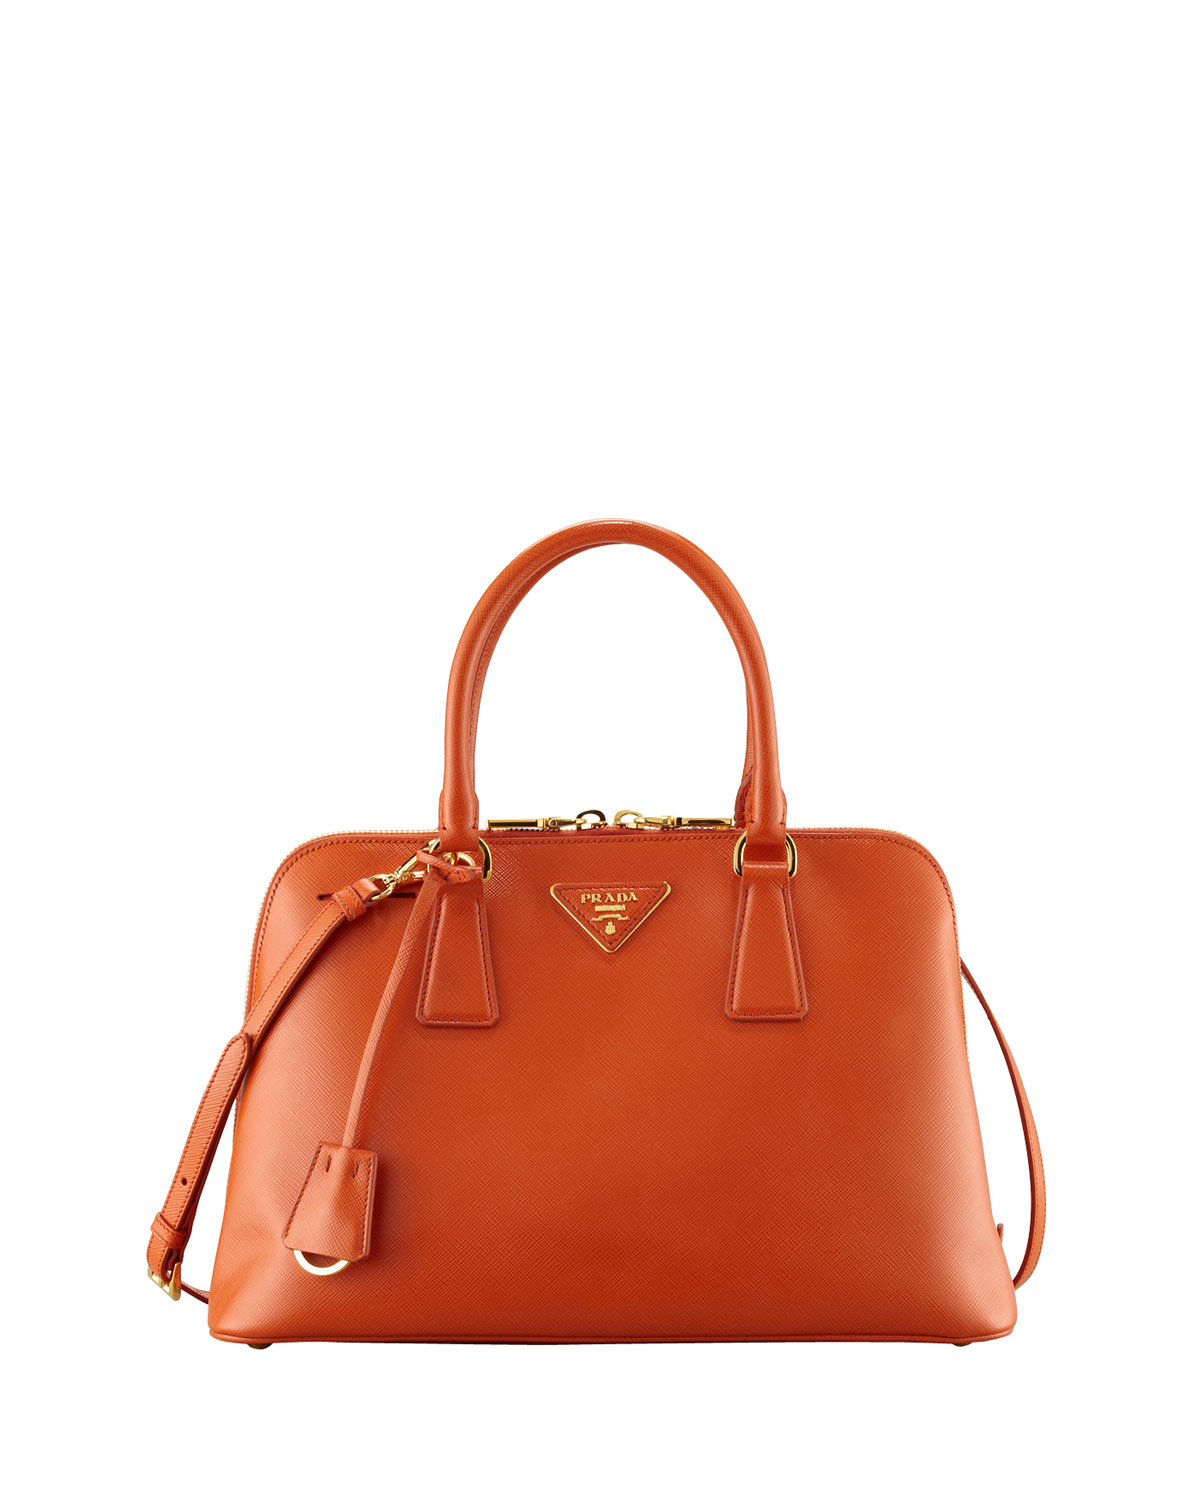 1b837c869dd6 Prada Saffiano Promenade Handbag in Orange (papaya)